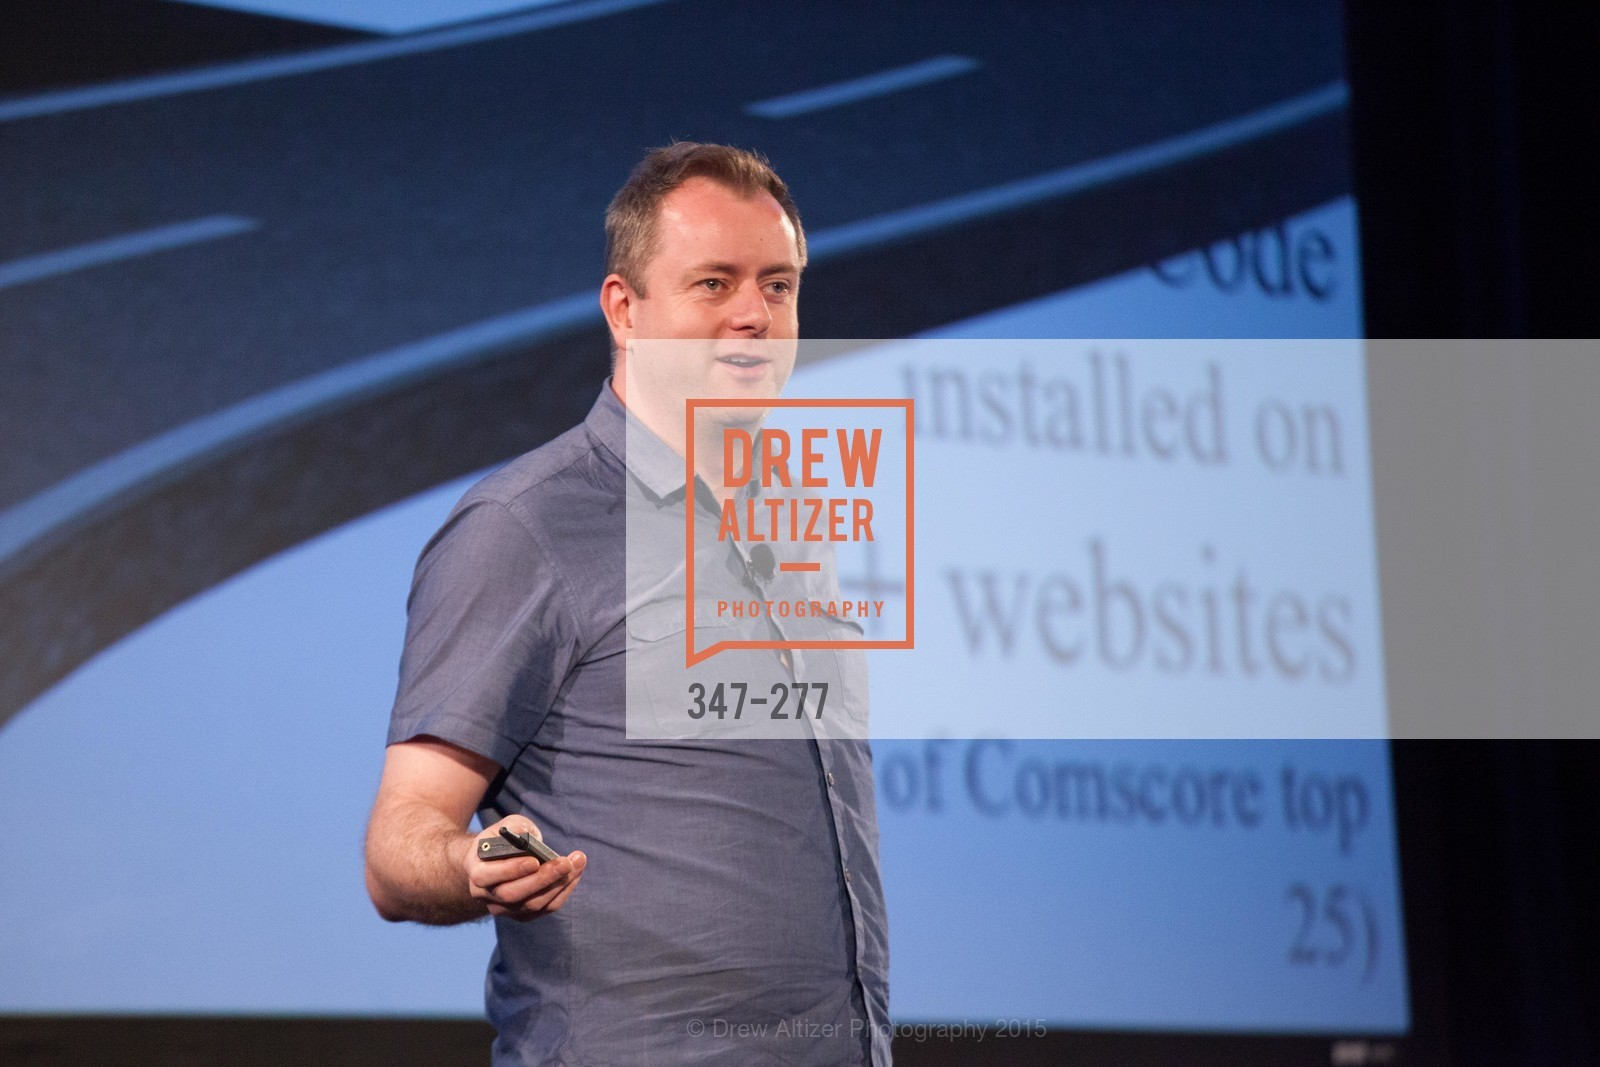 Extras, sovrn i 2 summit 2015, September 9th, 2015, Photo,Drew Altizer, Drew Altizer Photography, full-service agency, private events, San Francisco photographer, photographer california